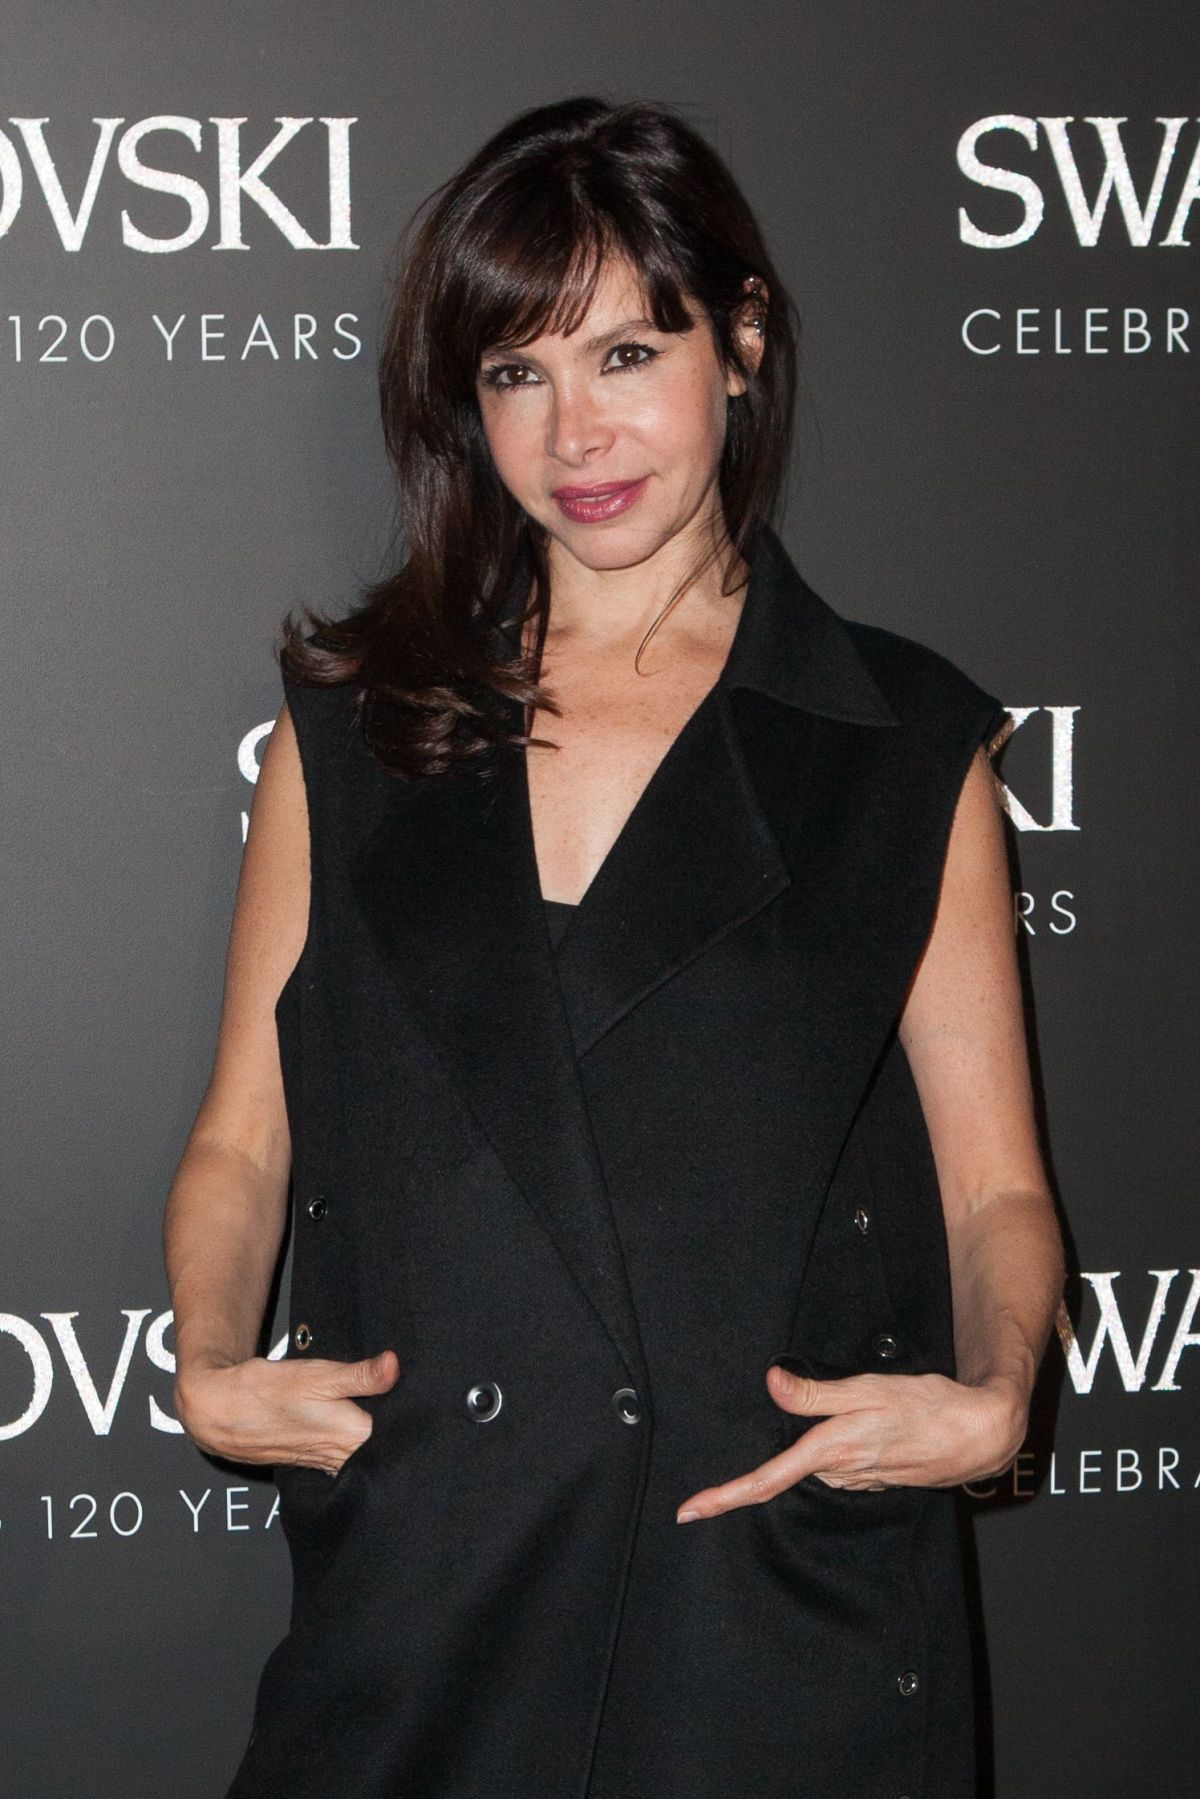 FREDERIQUE LOPEZ at Swarovski 120 x Rizzoli Exhibition and Cocktail in Paris 09/30/2015